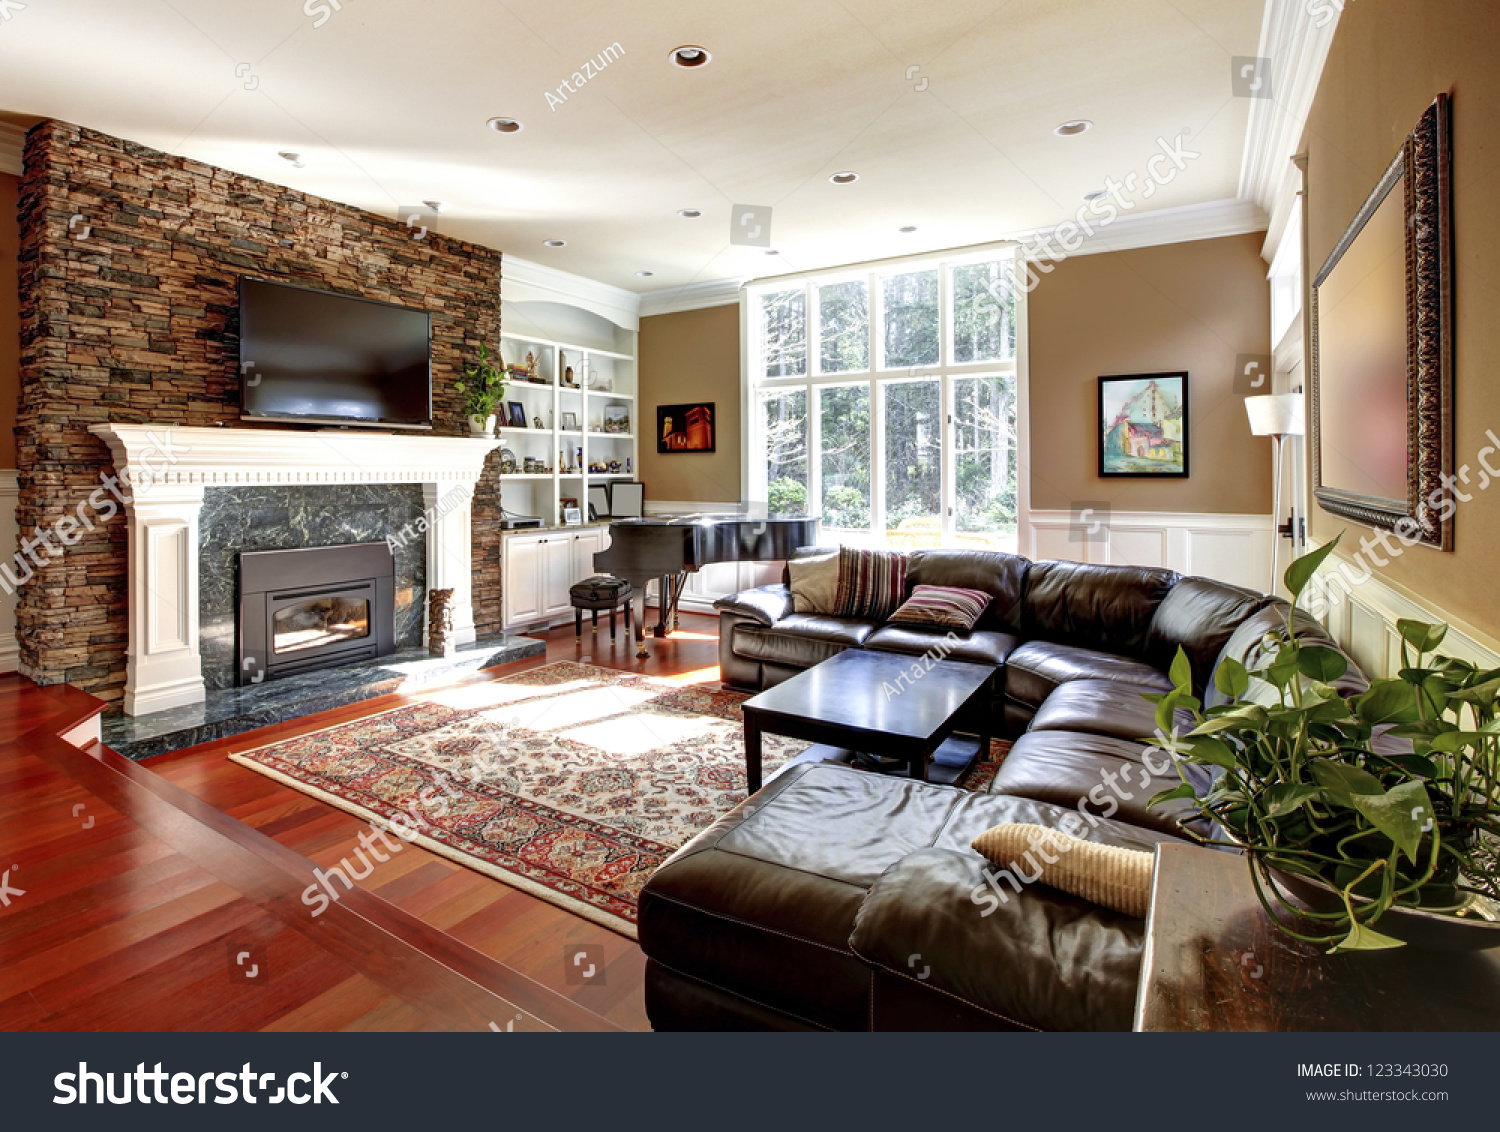 Luxury living room fireplace - Luxury Living Room With Stone Fireplace And Leather Sofas Cherry Hardwood And Nice Rug